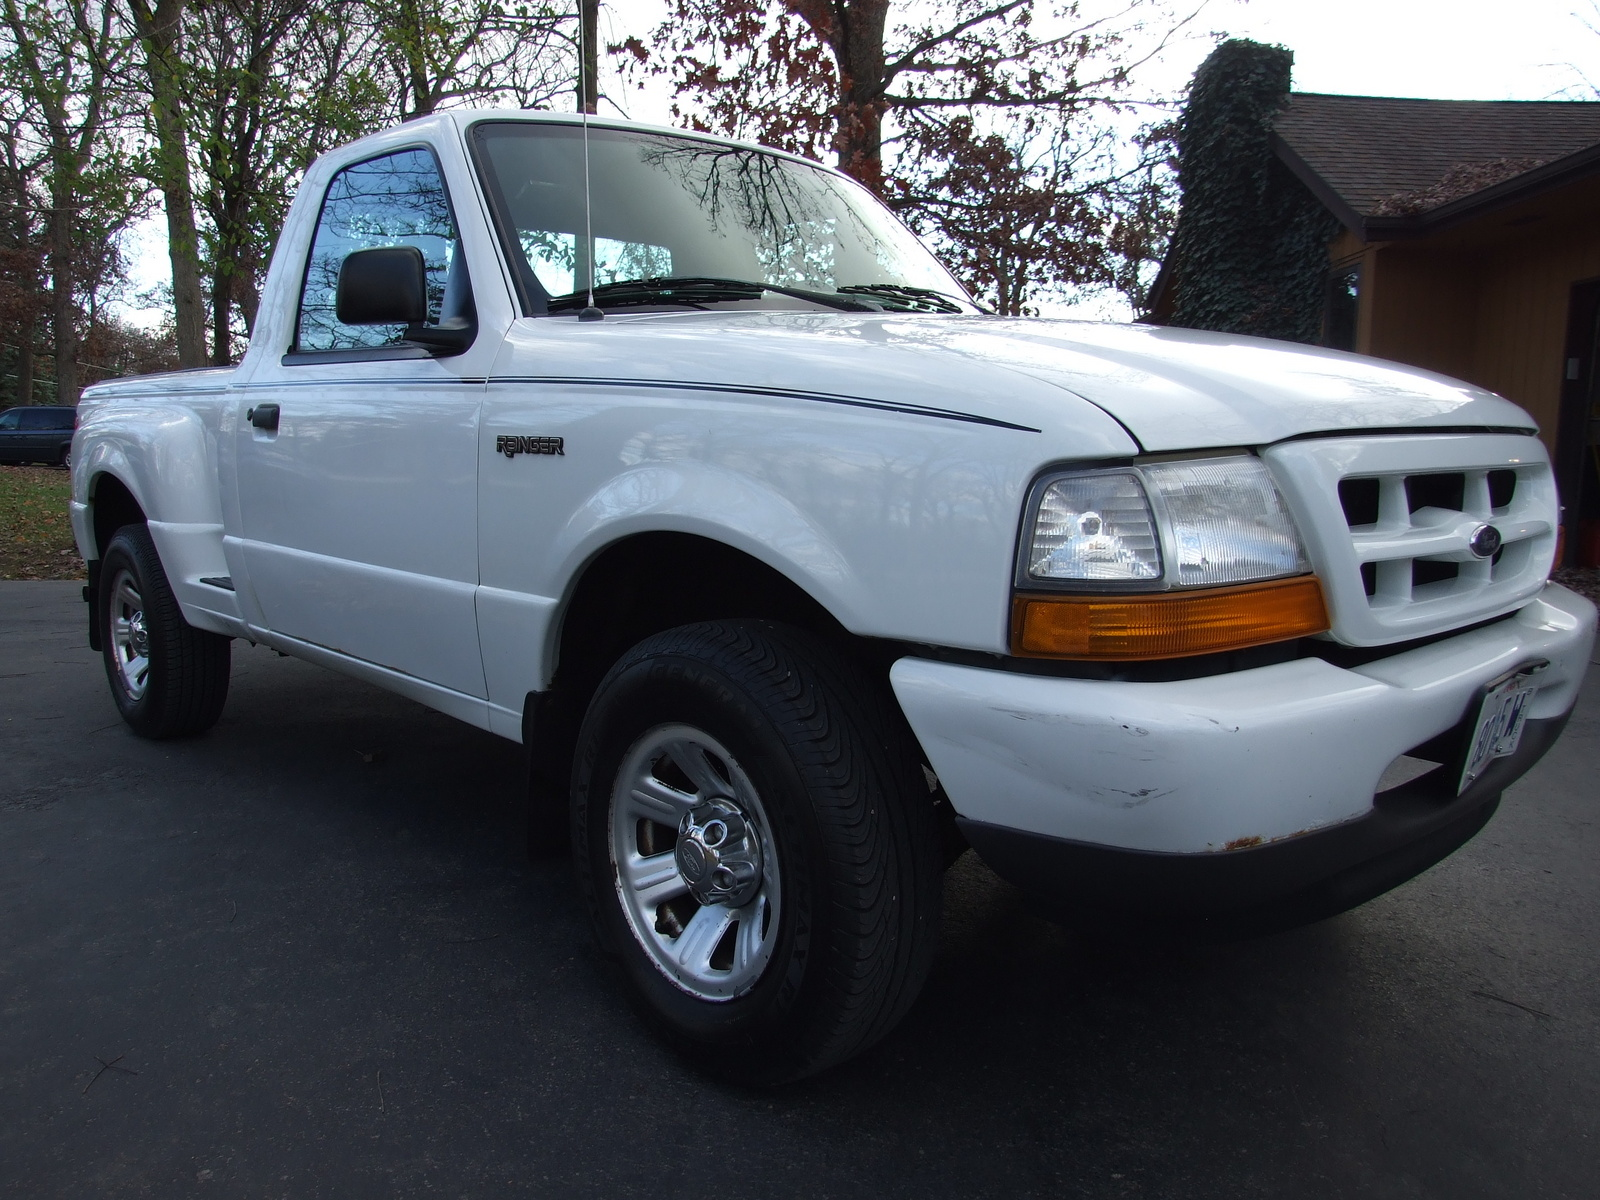 2001 Ford Ranger Pictures C165 pi36375092 furthermore 2002 Ford Ranger Pictures C149 pi34247914 also 2002 Toyota Ta a Pictures C4002 pi36064483 as well 1024179 Flat Bed Plans as well 1992 Ford F 150 Pictures C5247 pi36629971. on 1996 ford ranger extended cab